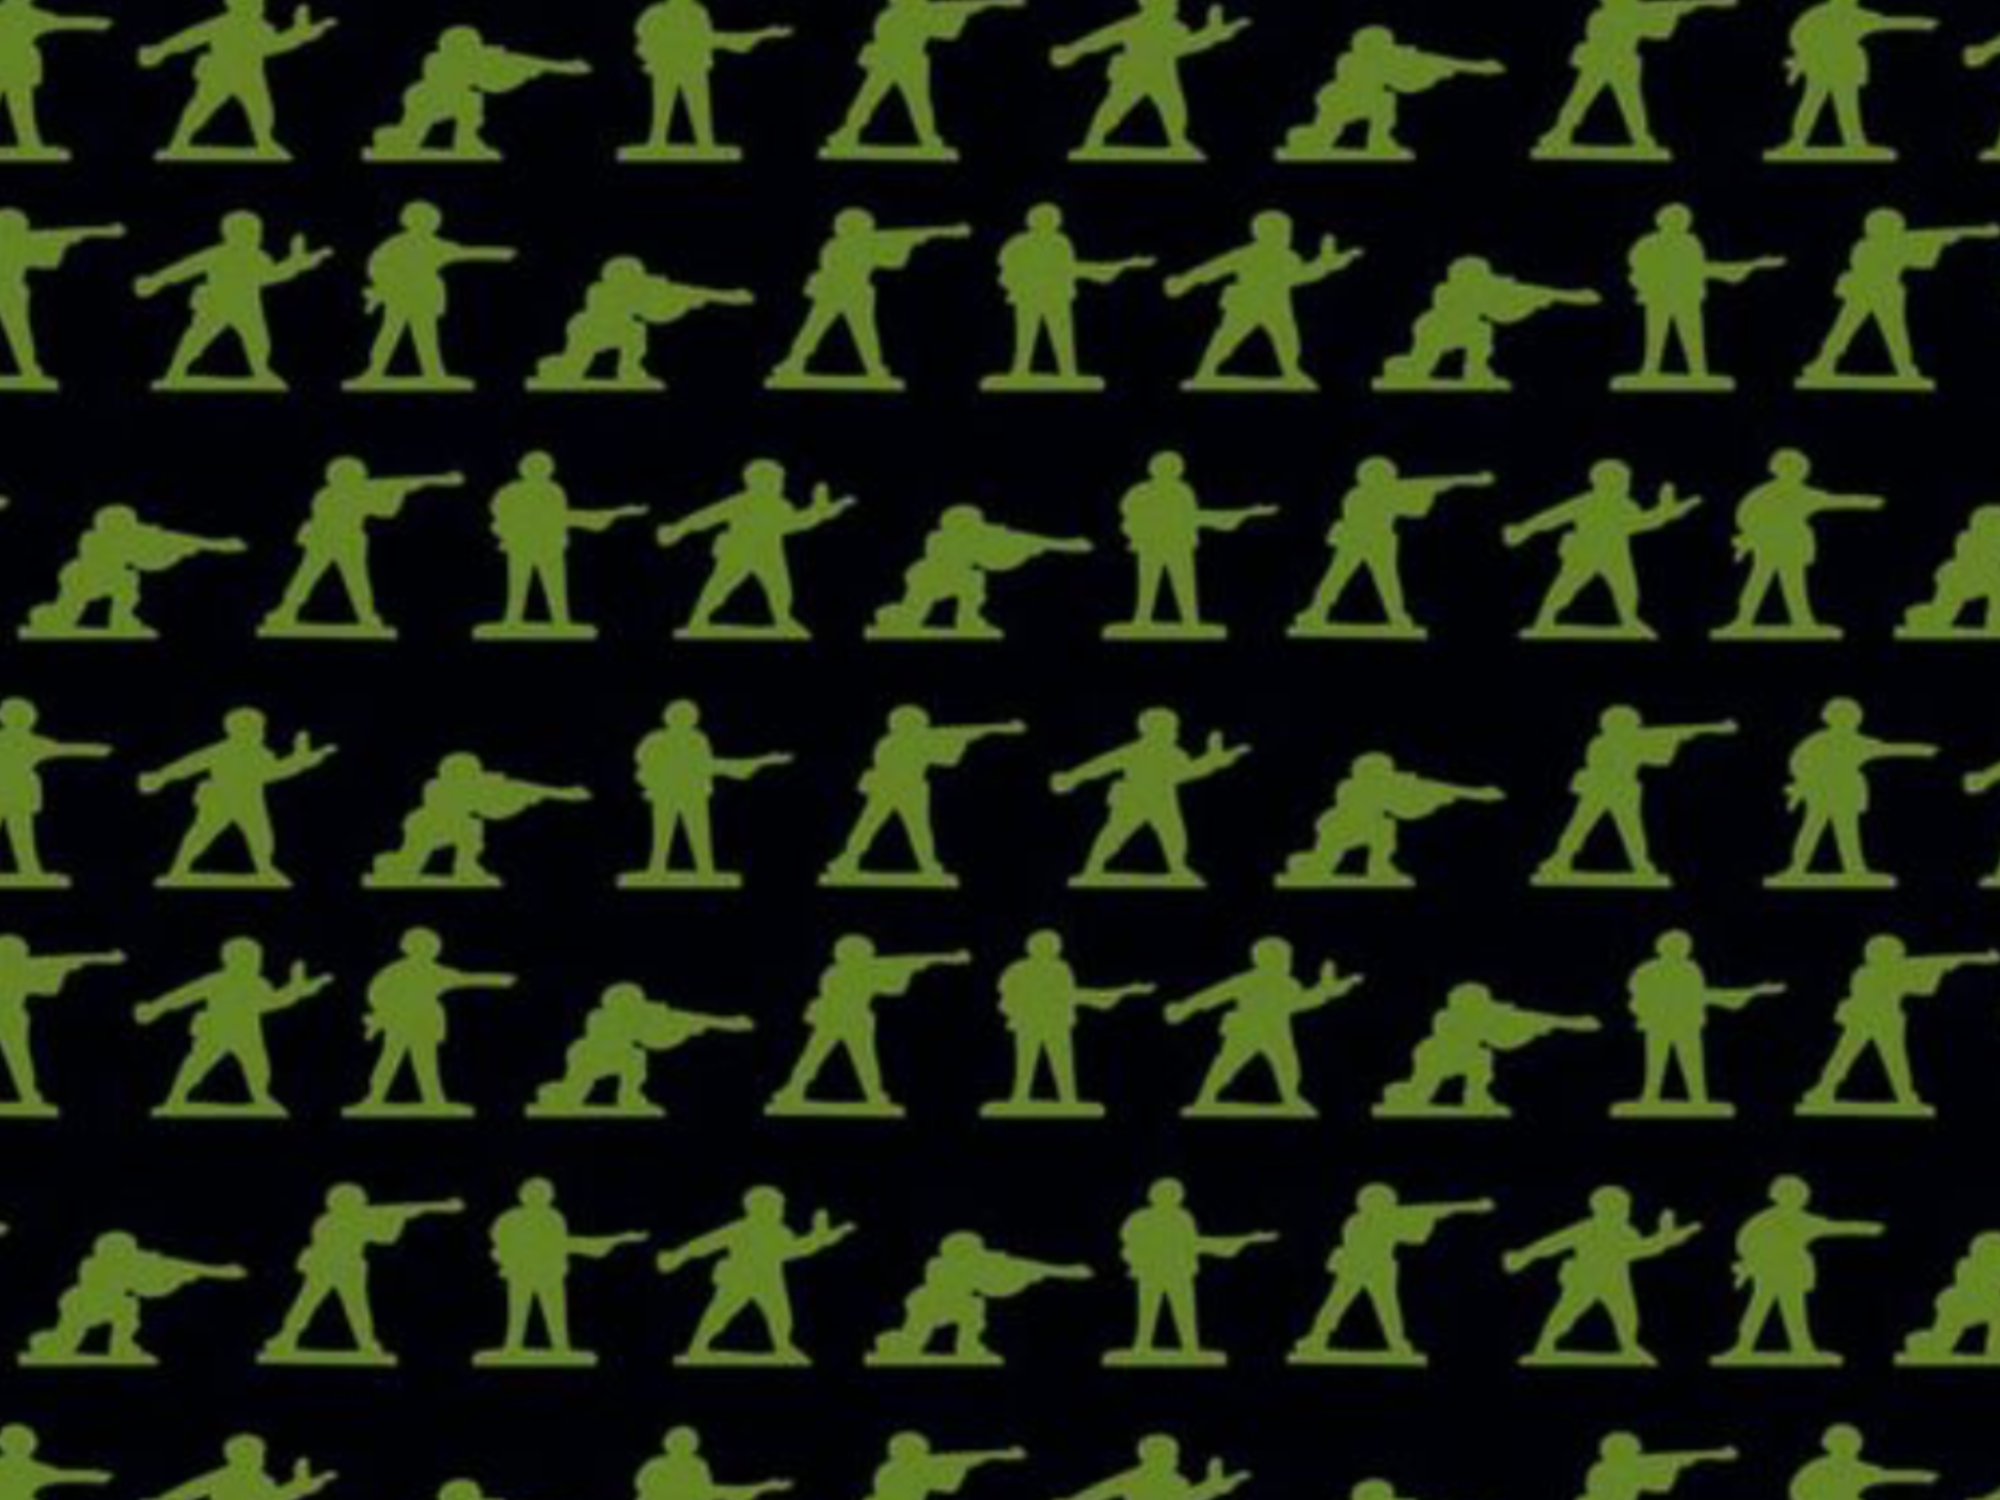 Toy Soldier Green Army Men War Plastic Battle Guns Cotton Quilt Fabric RB74